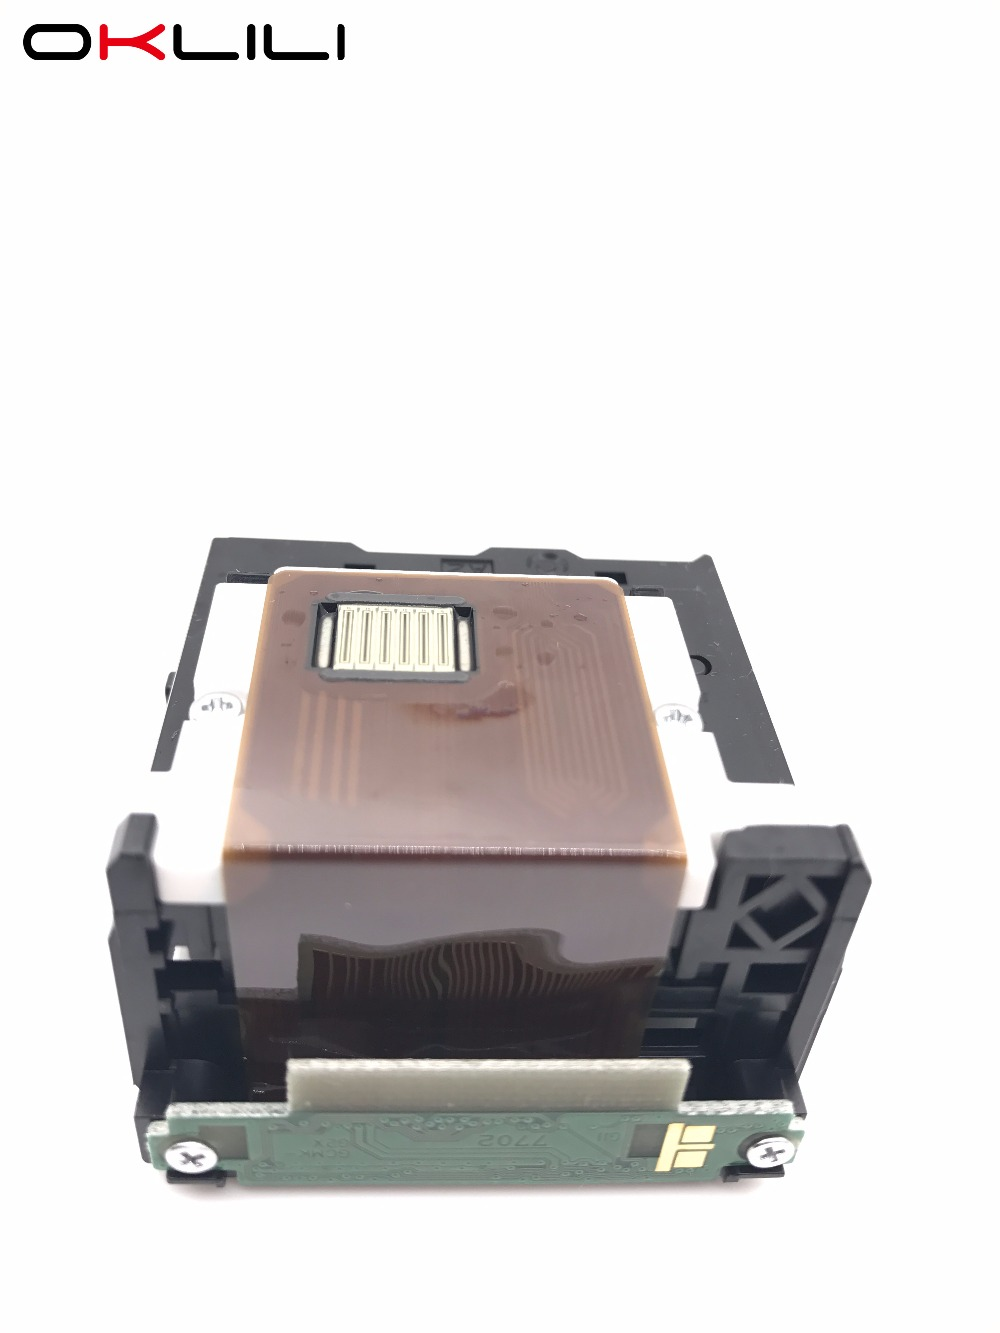 OKLILI ORIGINAL NEW QY6-0069 QY6-0069-000 Printhead Print Head Printer Head for Canon mini260 mini320 high quality original print head qy6 0057 printhead compatible for canon ip5000 ip5000r printer head